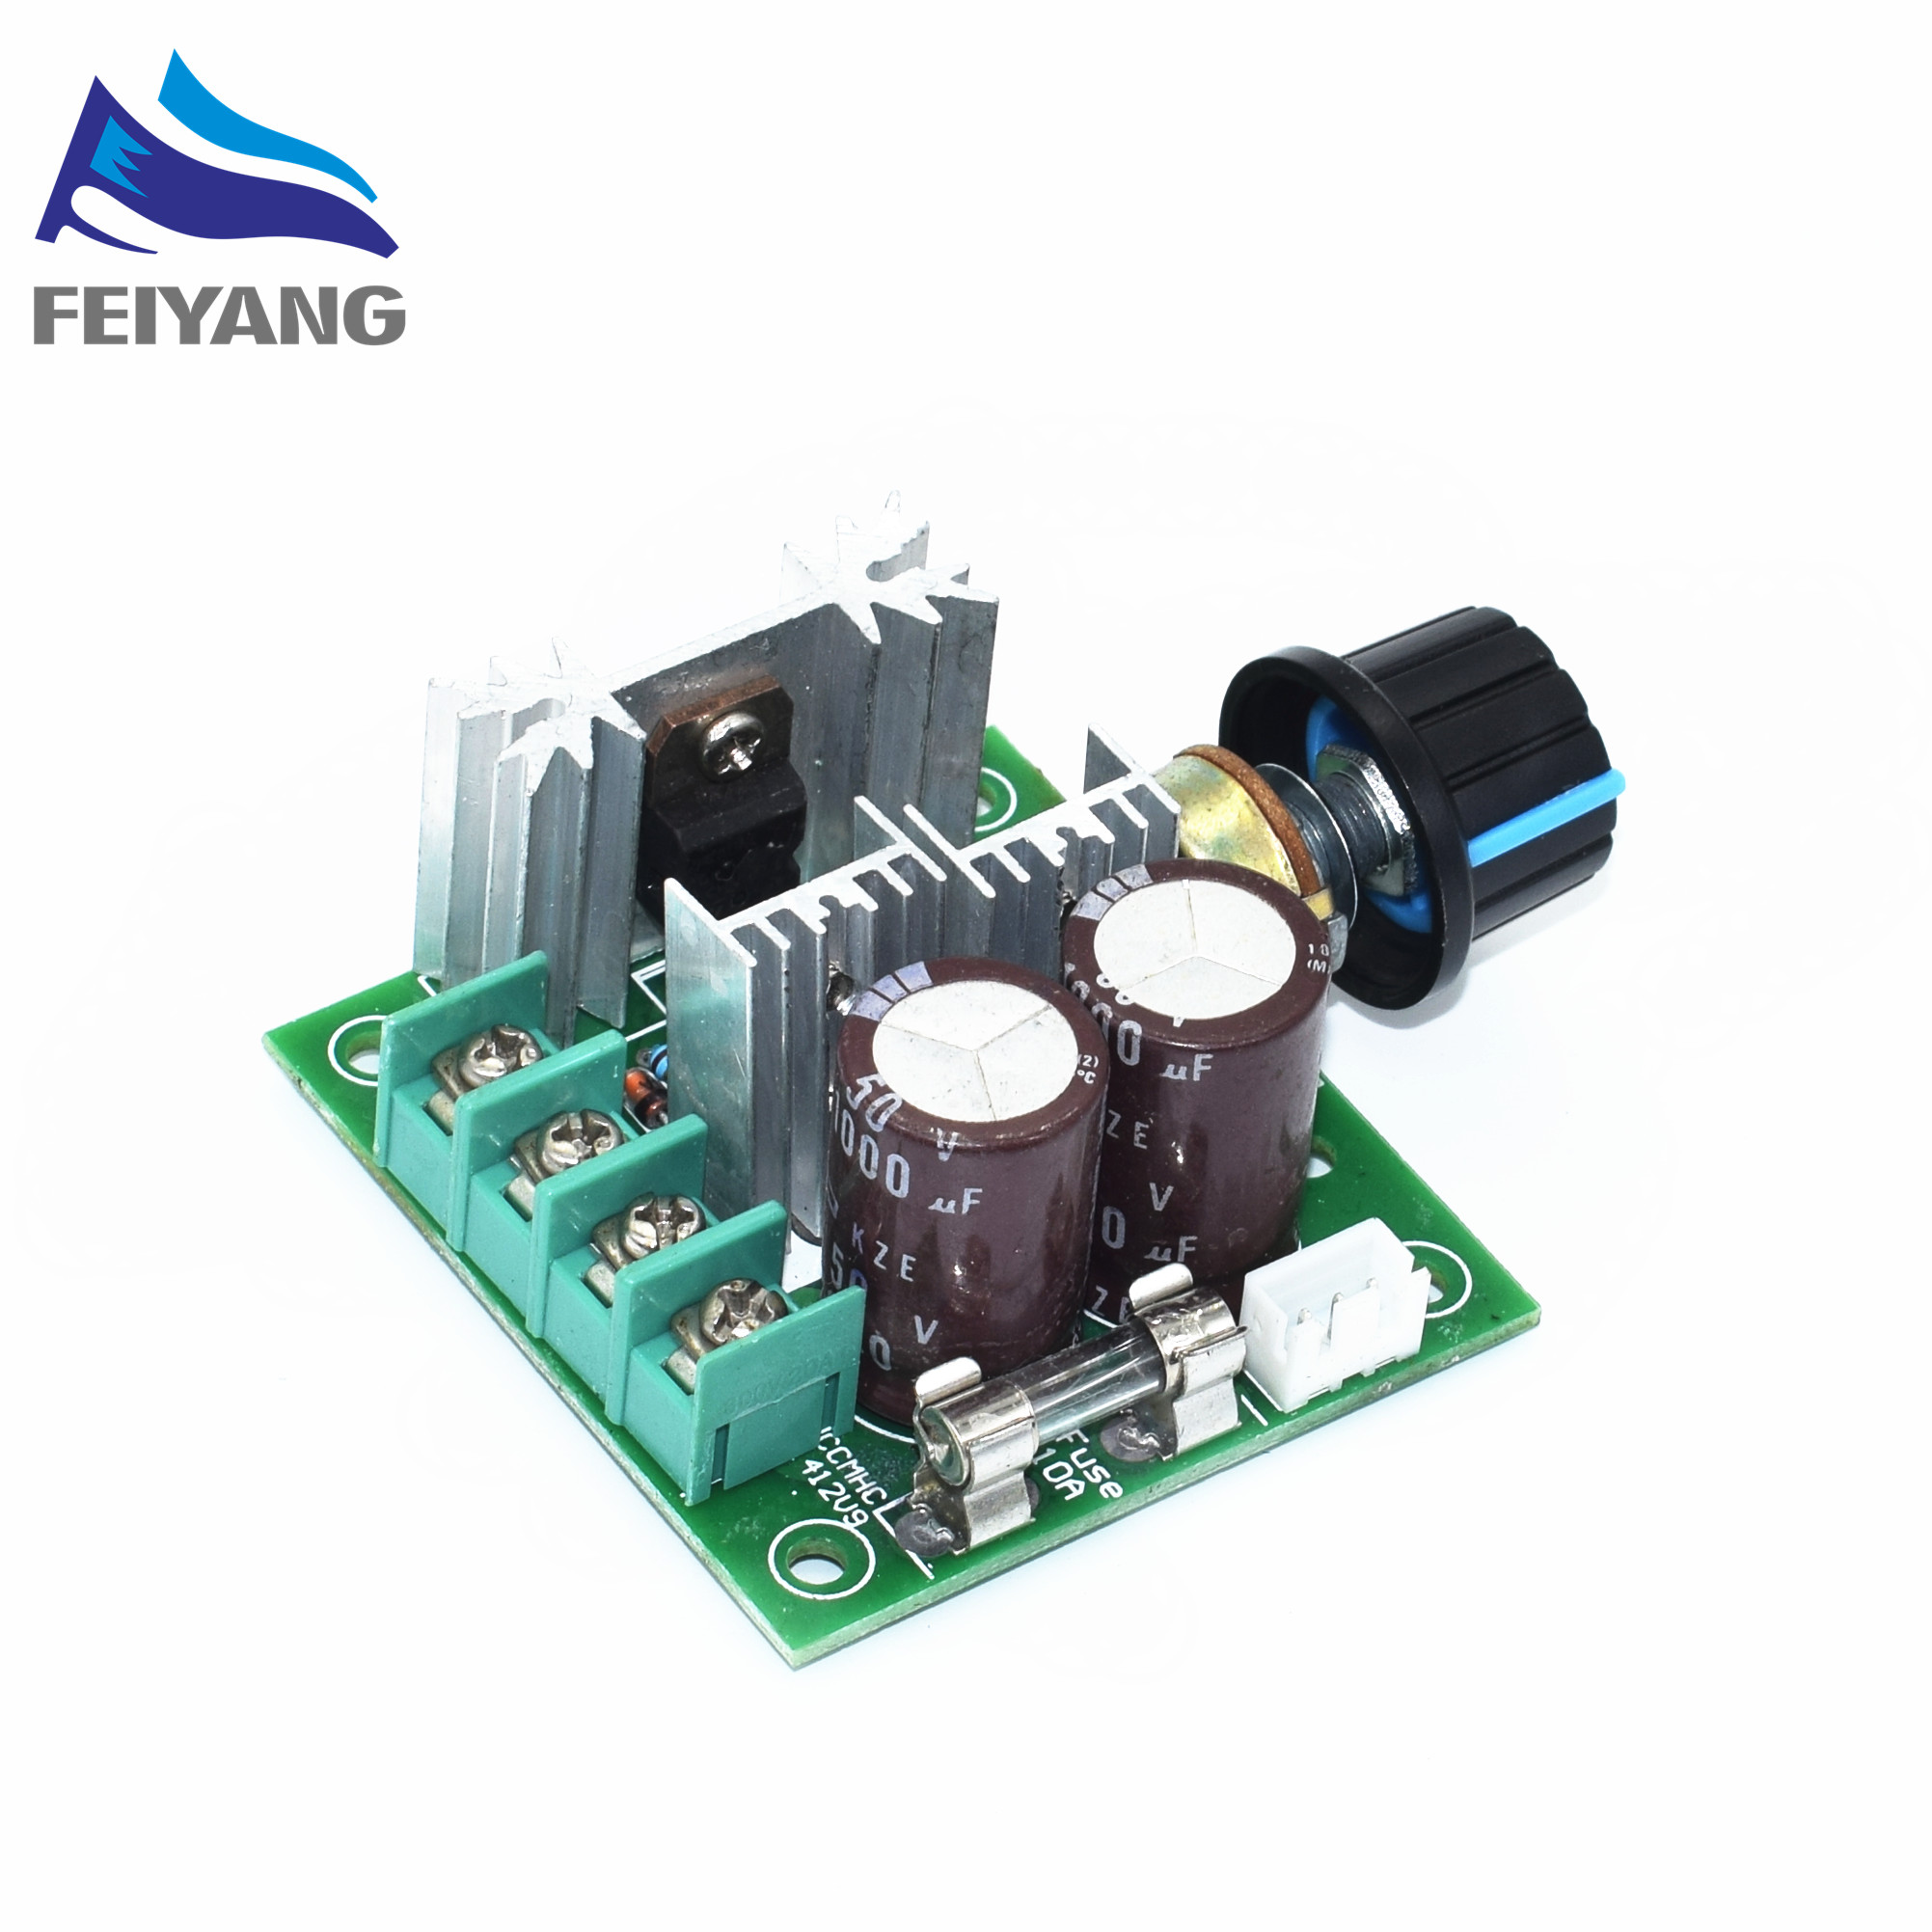 Electronic Components & Supplies Active Components 10a 12v-40v Pulse Modulation 13khz Pwm Dc Motor Adjuster Speed Control Switch Diy Kit Electronic Pcb Board Module Bright In Colour